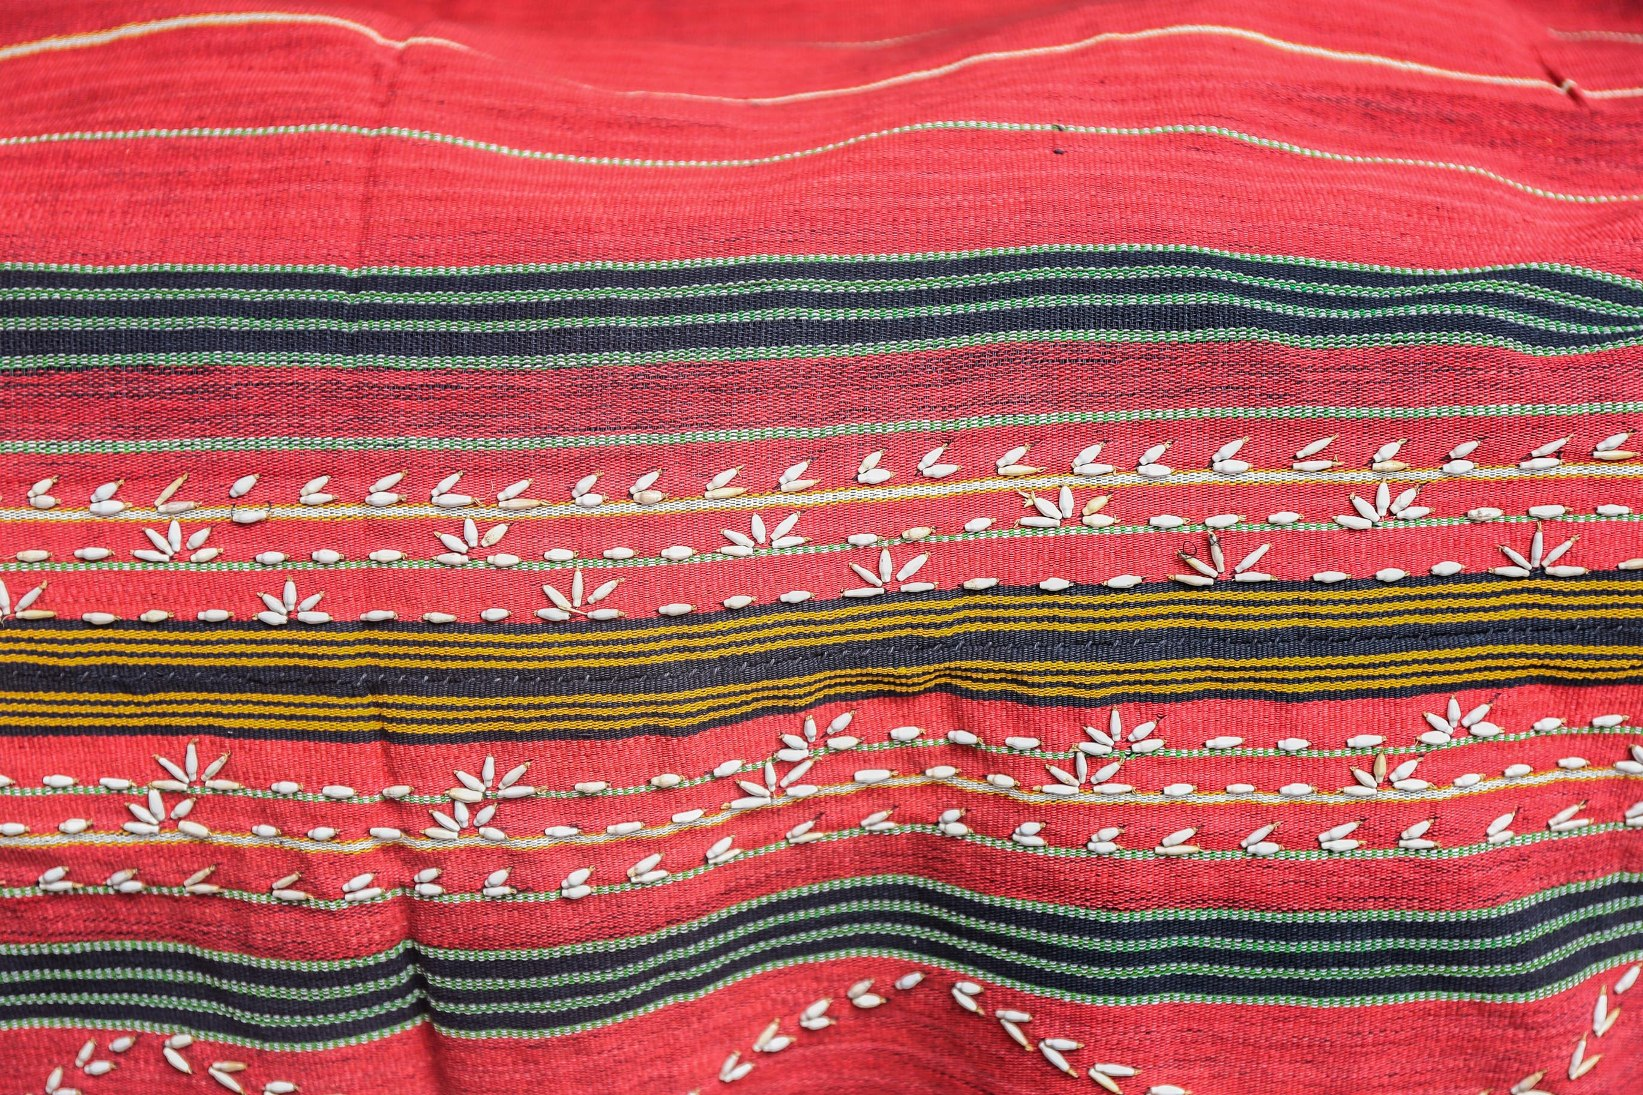 Tribal Textiles Yangon Myanmar (Burma) Asia Antiques Buying Tours with The Antiques Diva